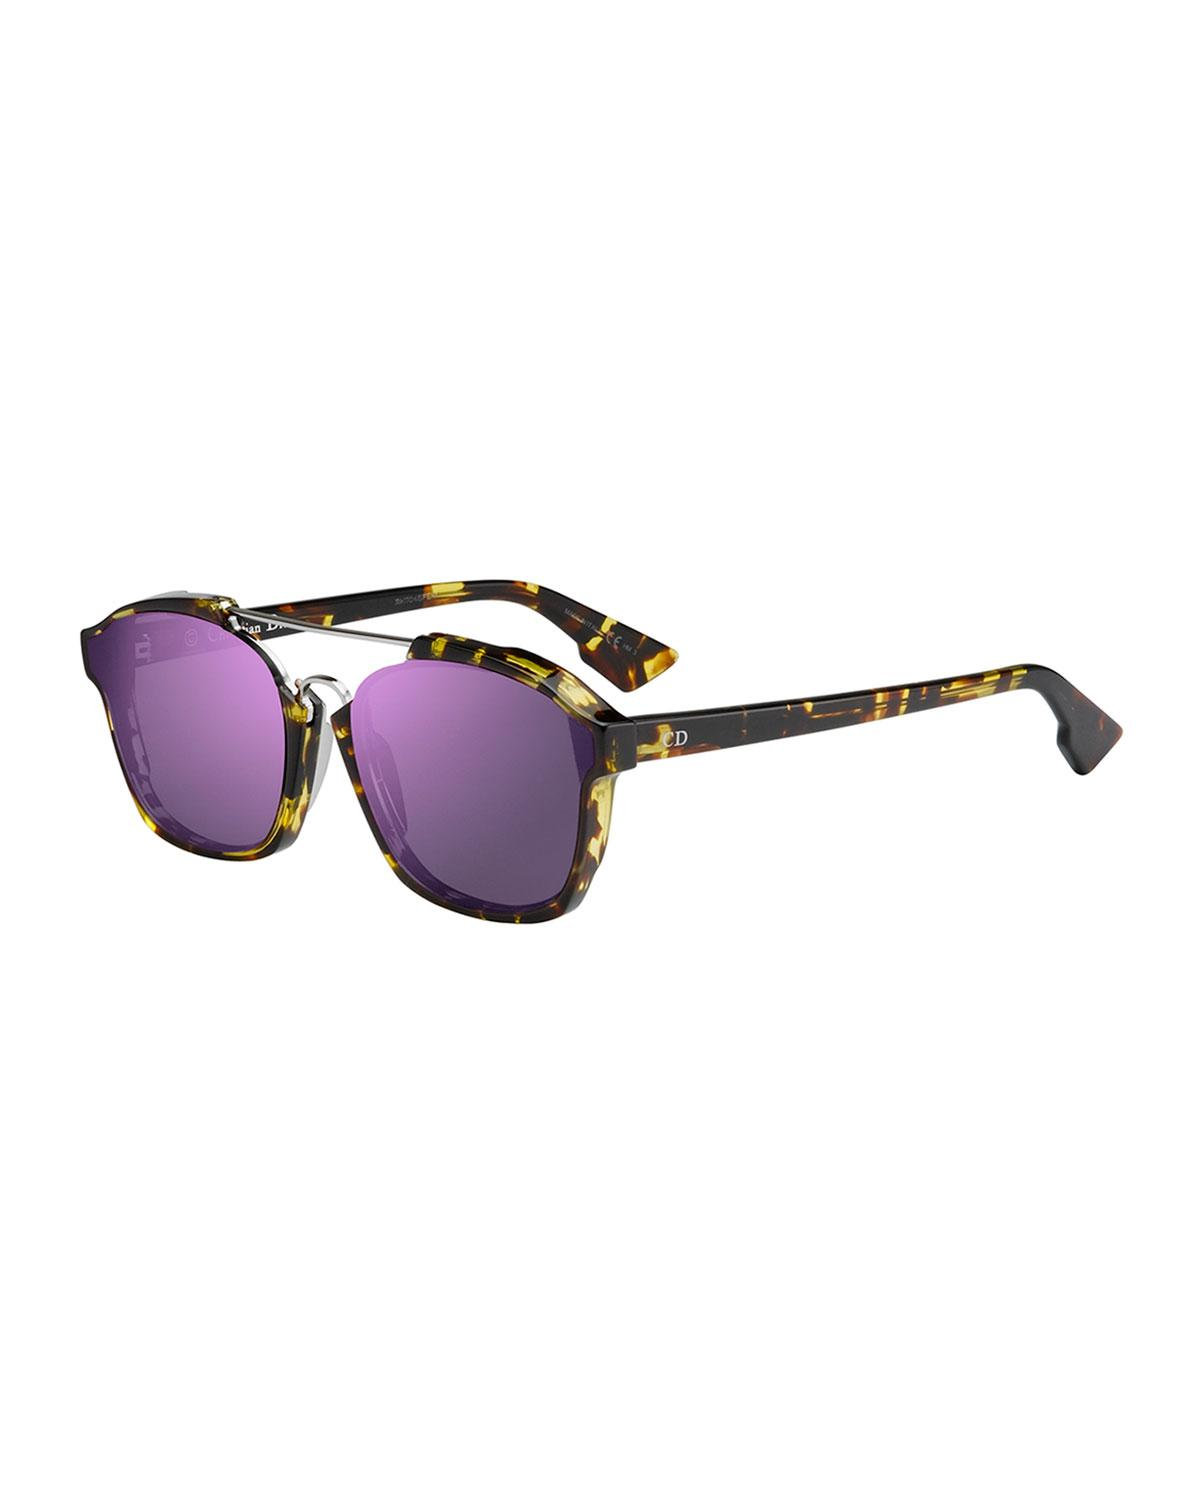 7a6c2f64dea Lyst - Dior Square Abstract Sunglasses in Black